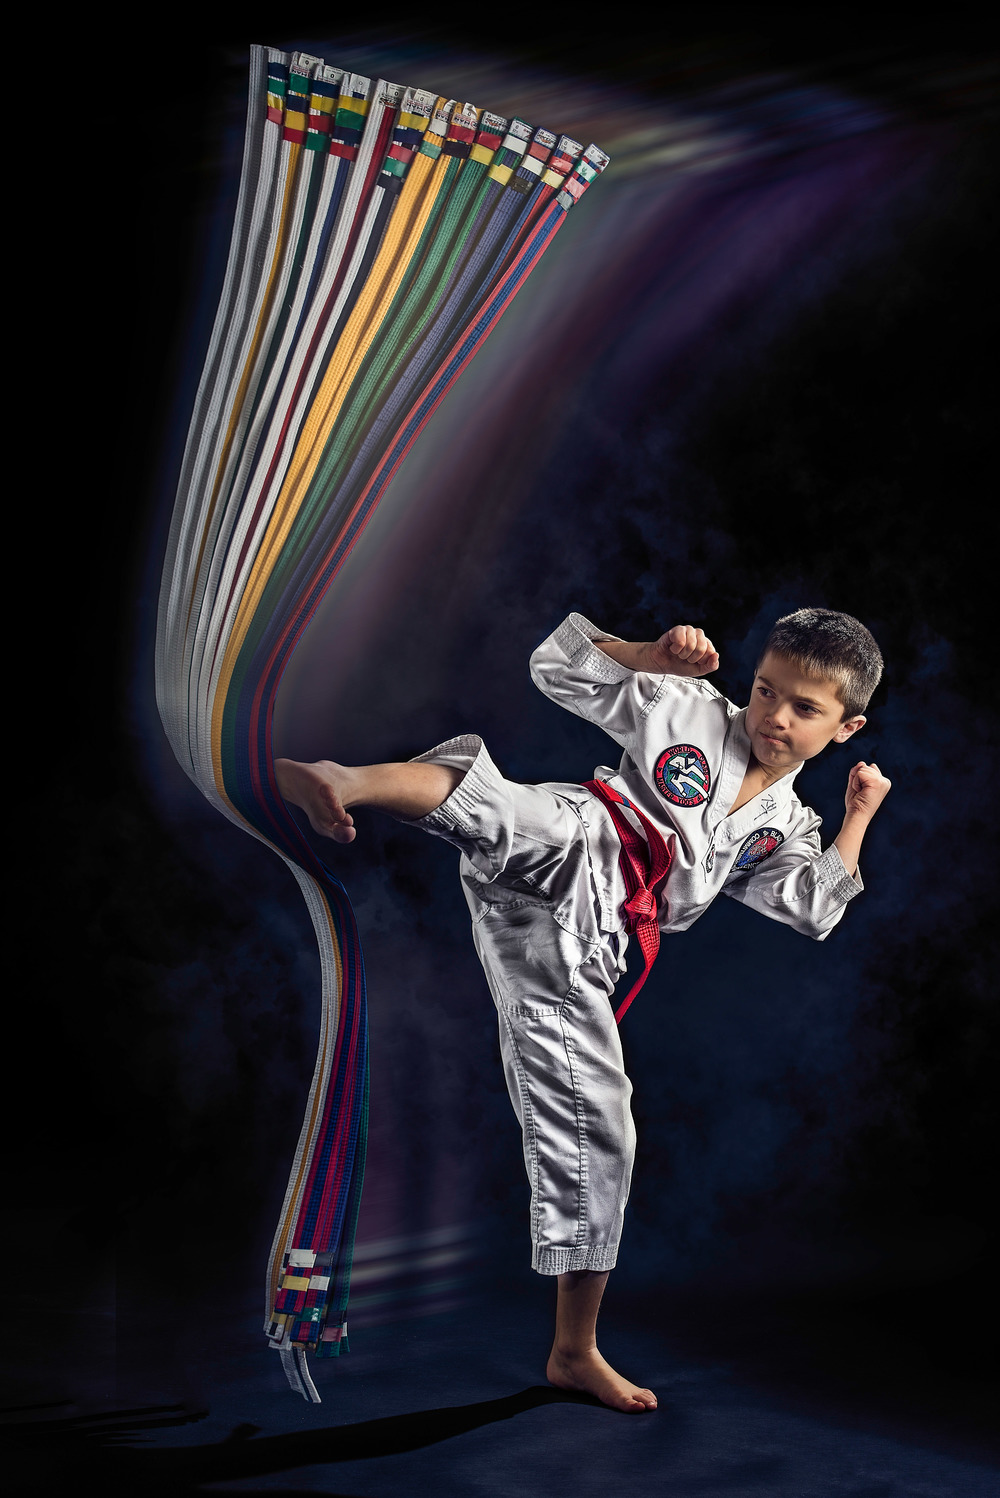 Taekwondo boy kicking at his belts.